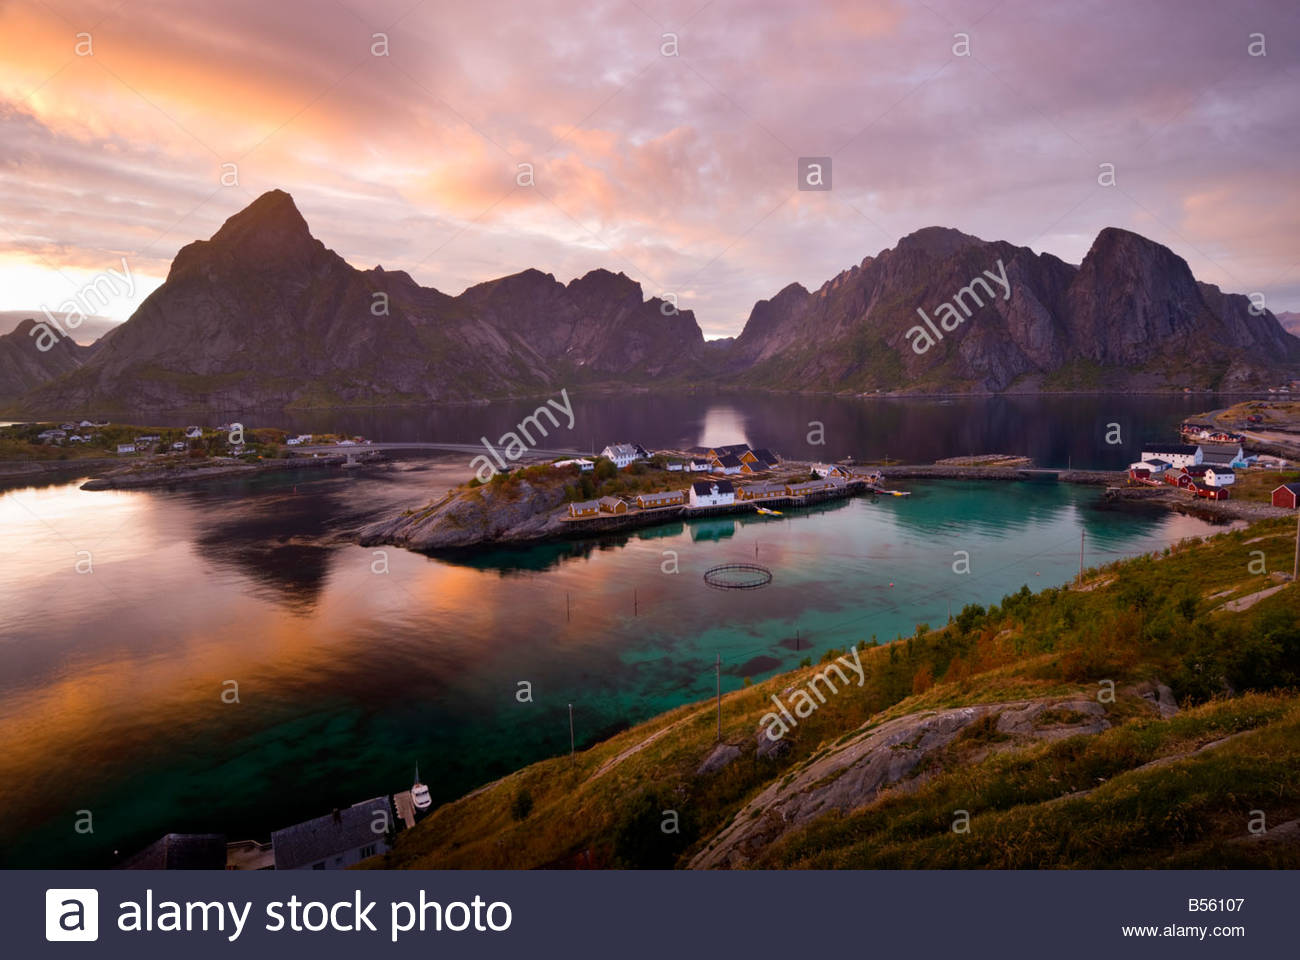 Lofoten Islands, with the hamlet of Sakrisøy, near Reine, in the foreground, Norway. - Stock Image